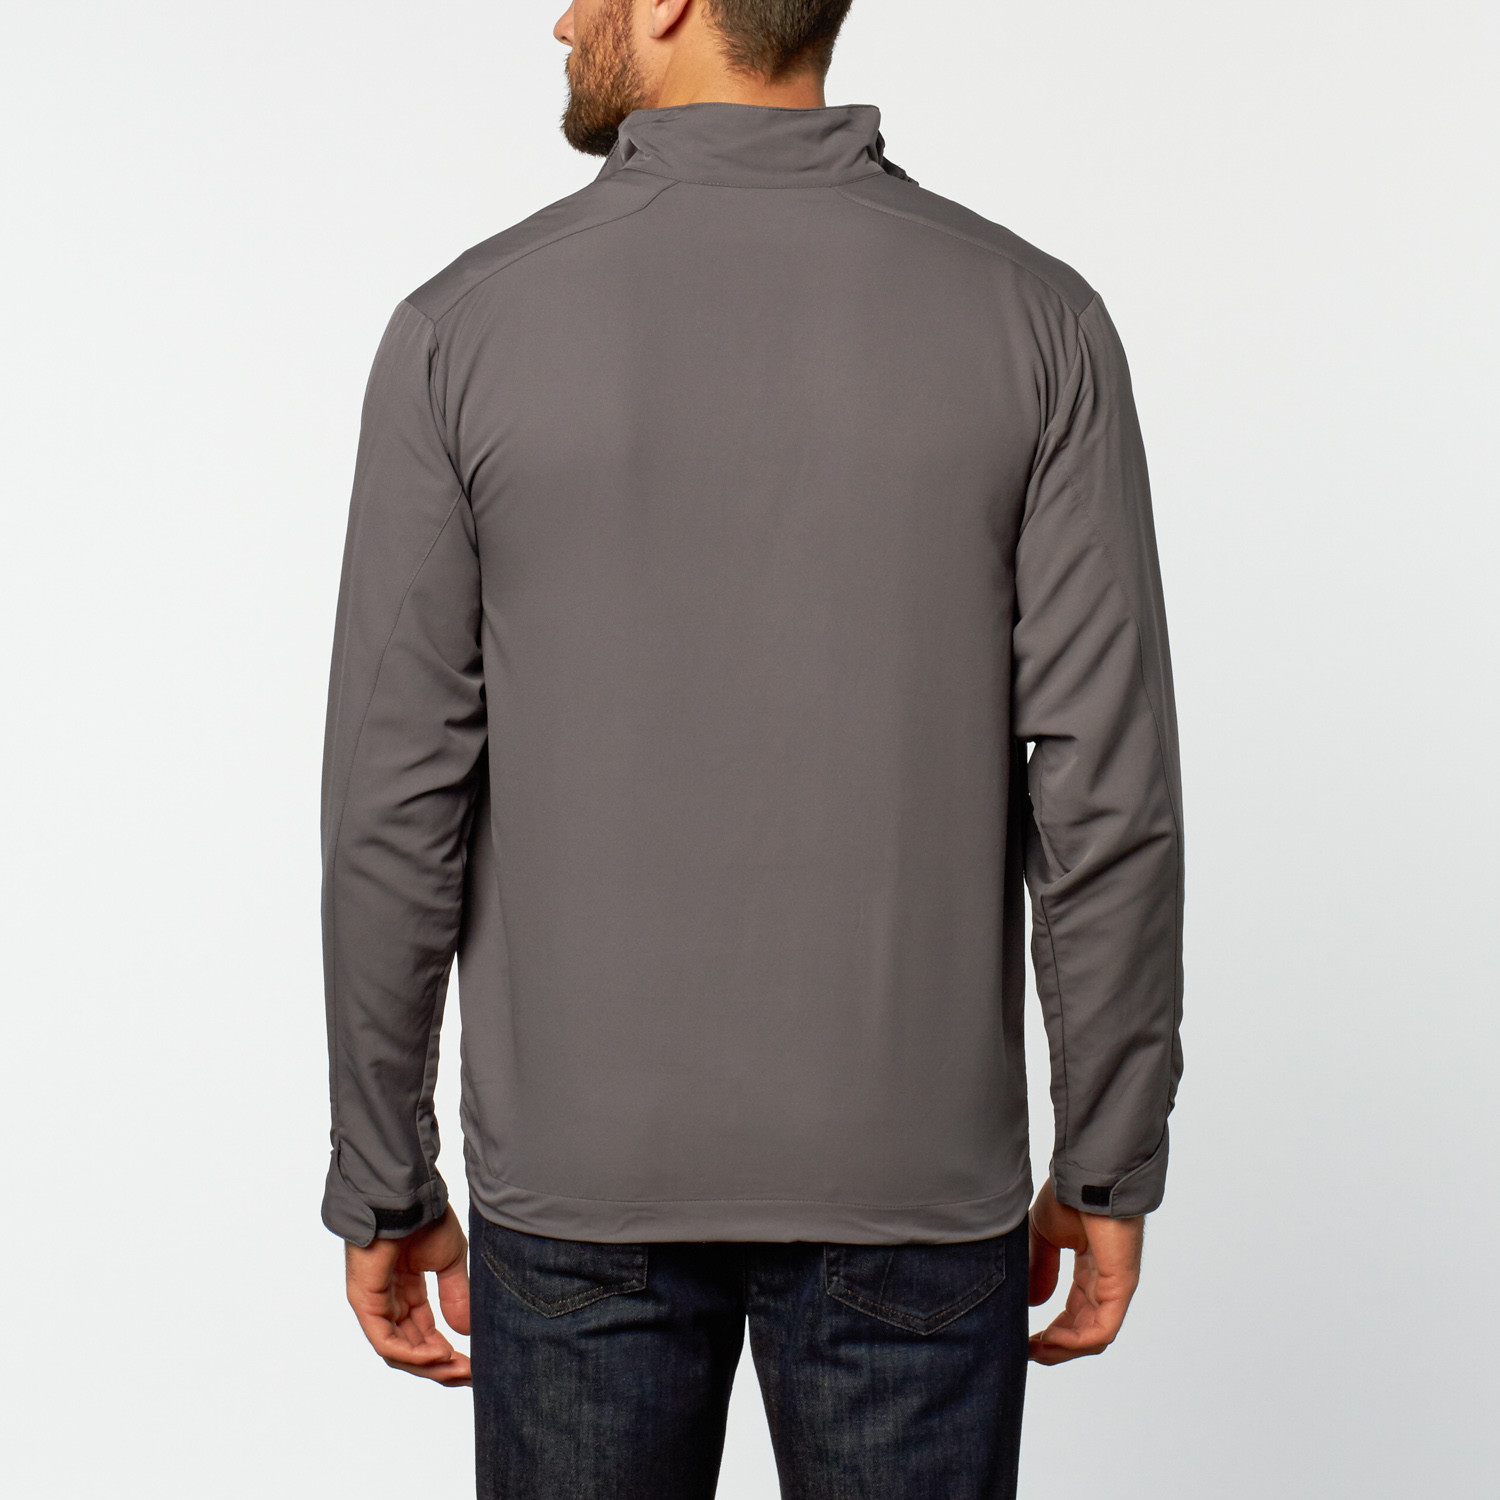 Nike half zip windshirt grey s mercedes benz for Mercedes benz wear